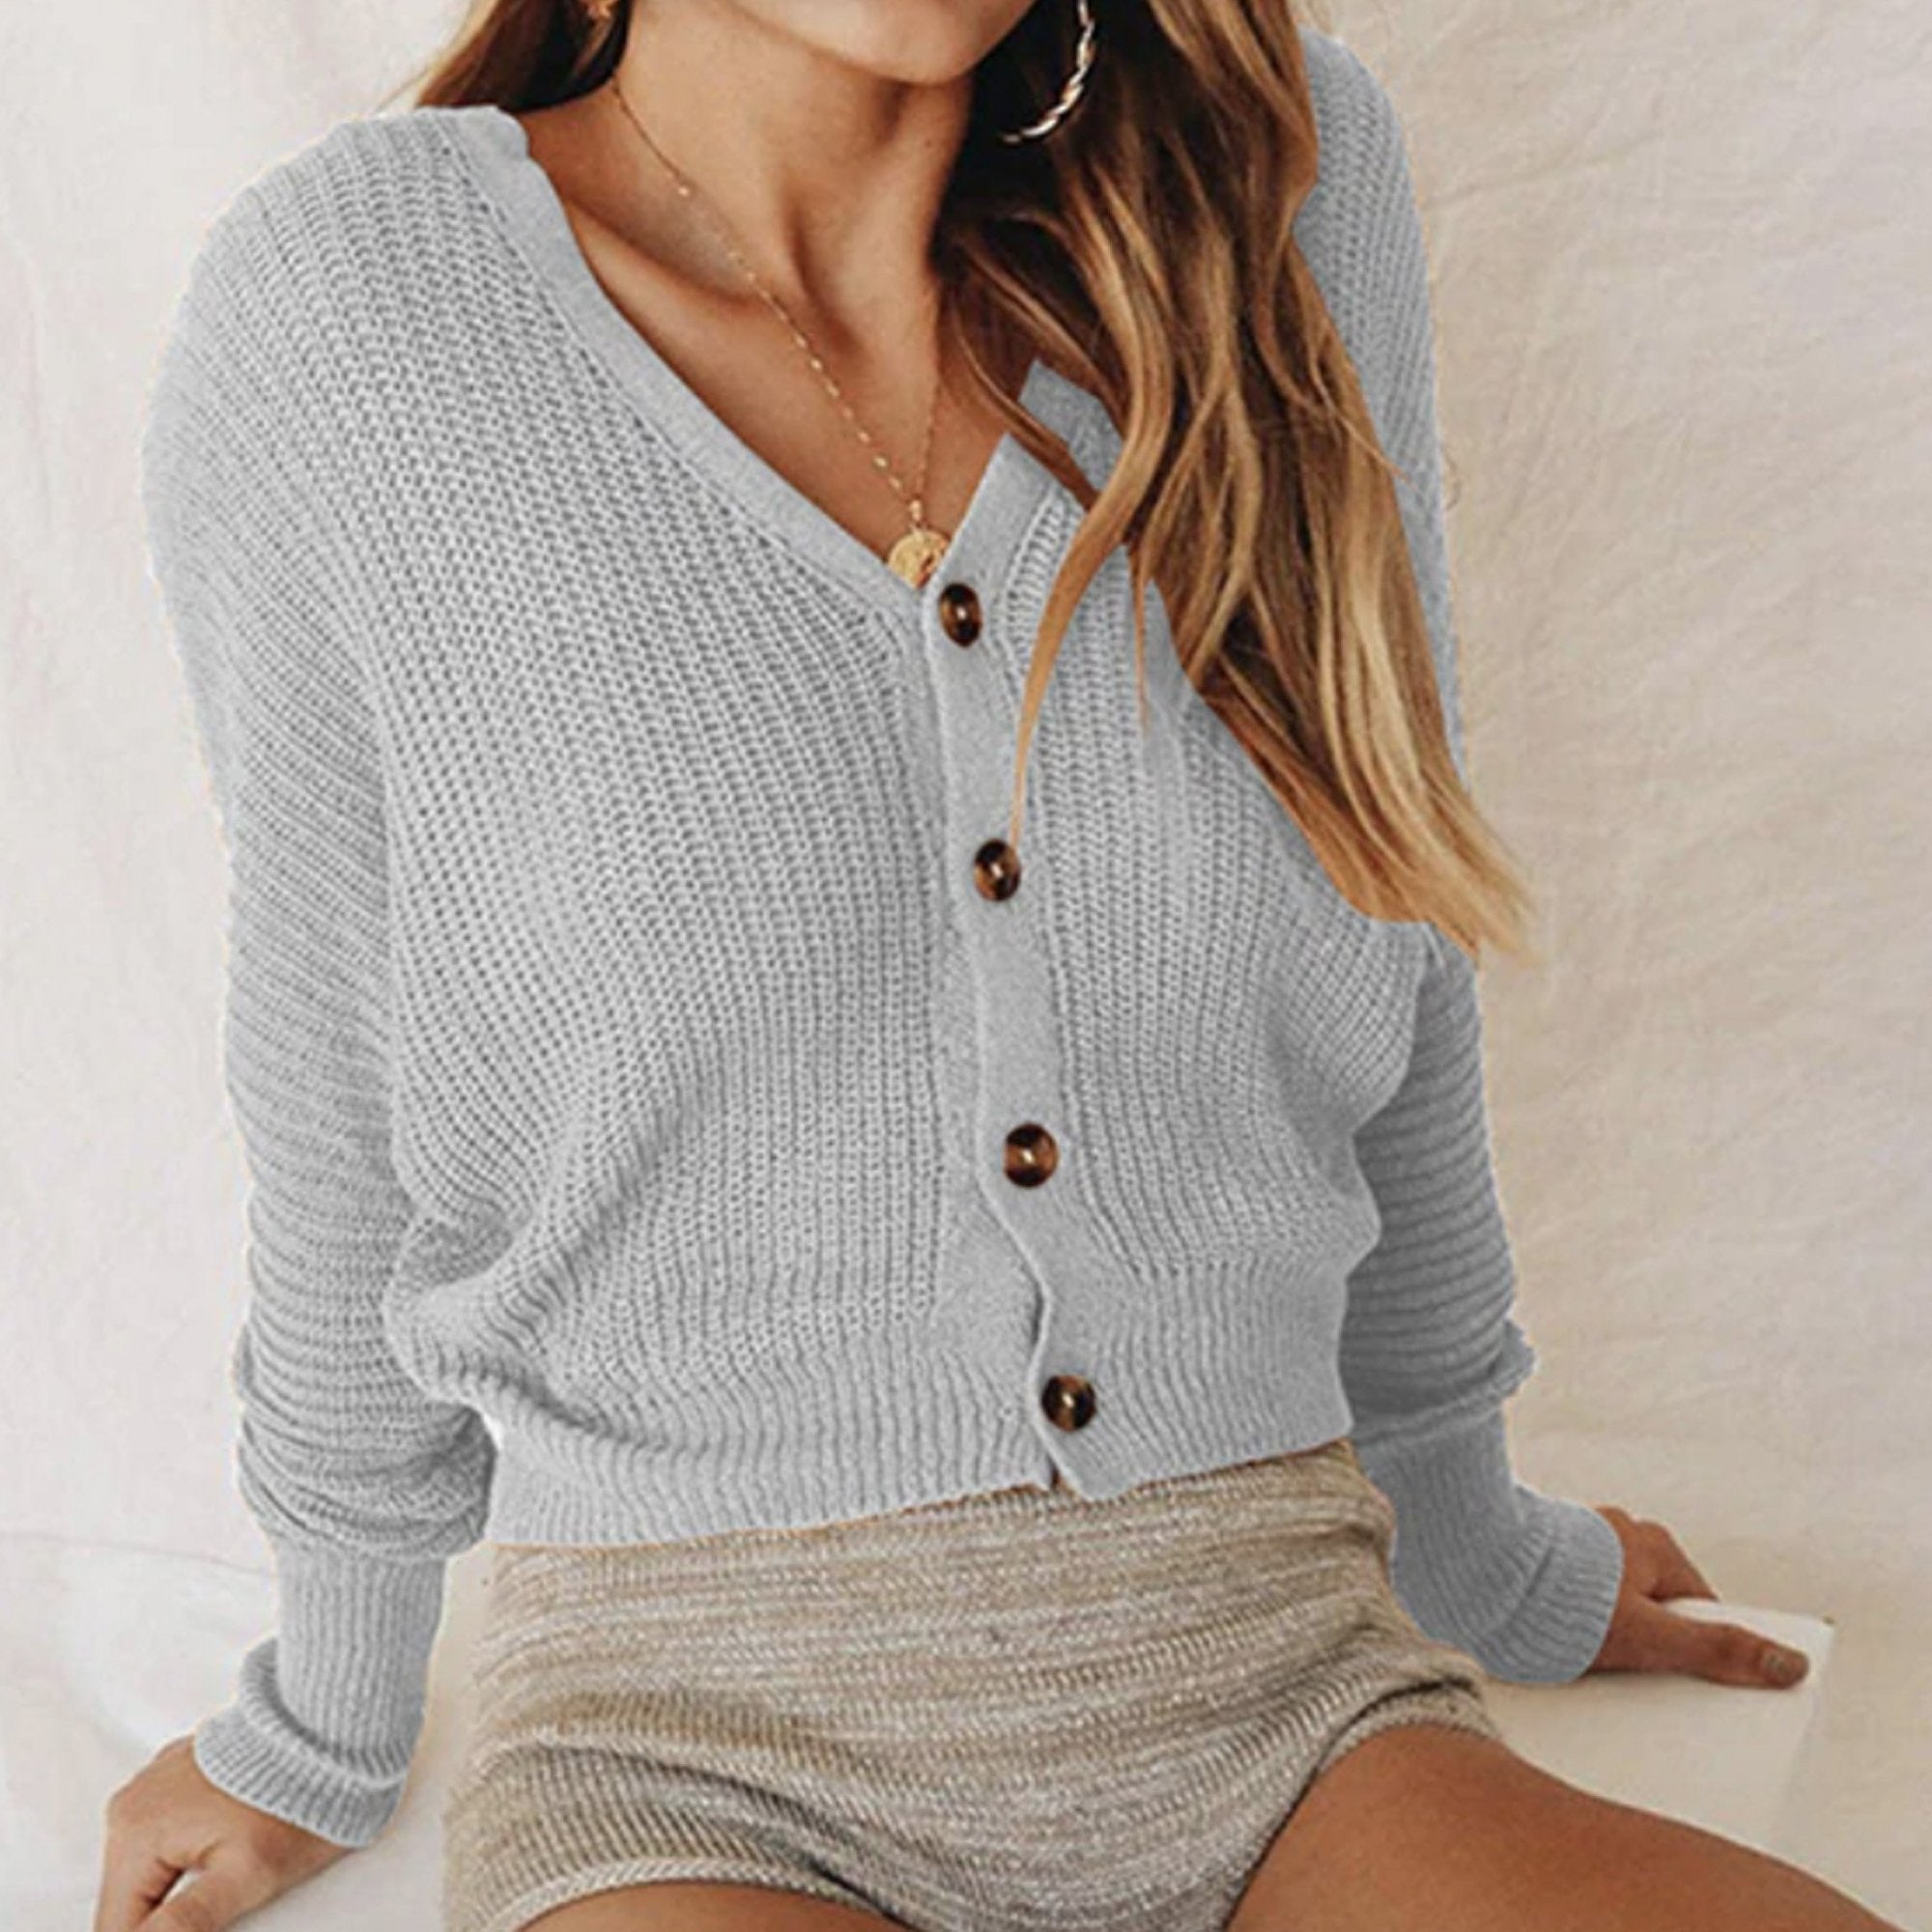 1b3a0c115086 ... Casual Cute Comfy Fall Outfit Ideas for Women - Cropped Ribbed Knit Sweater  Button Up Cardigan ...